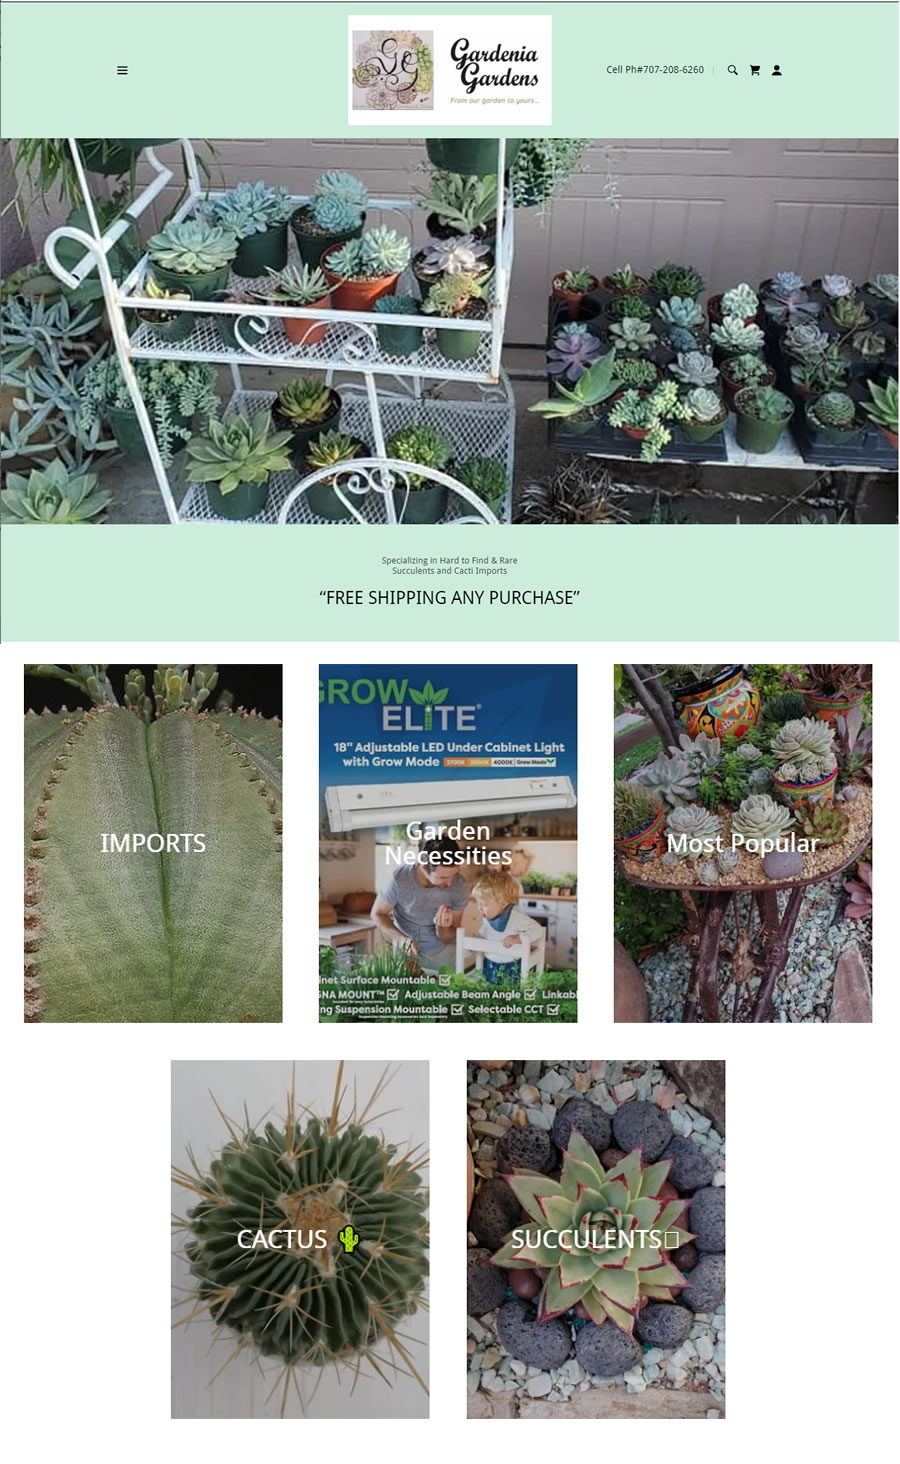 Gardenia Gardens - Rare Succulents and Cacti